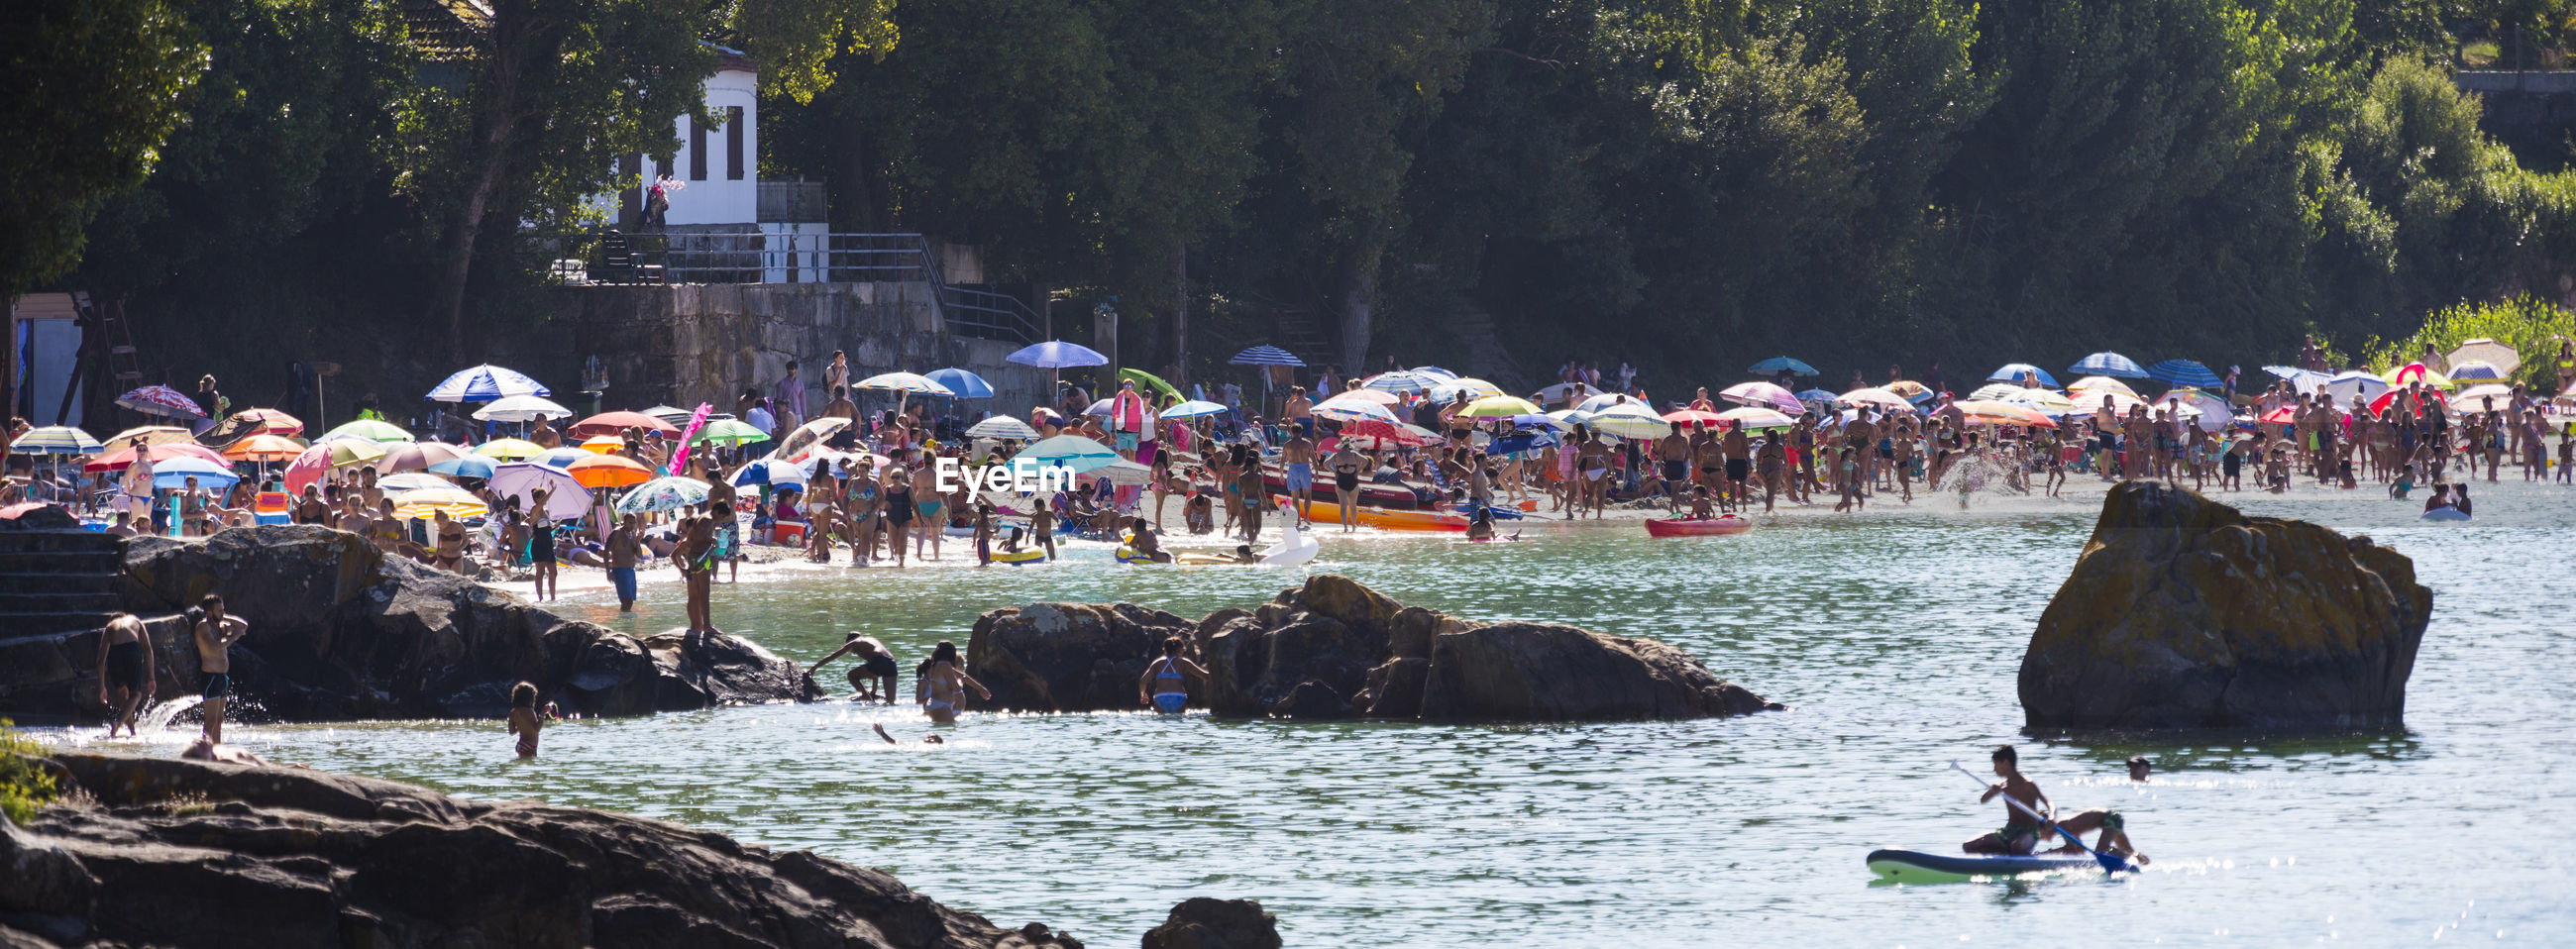 People at beach against trees